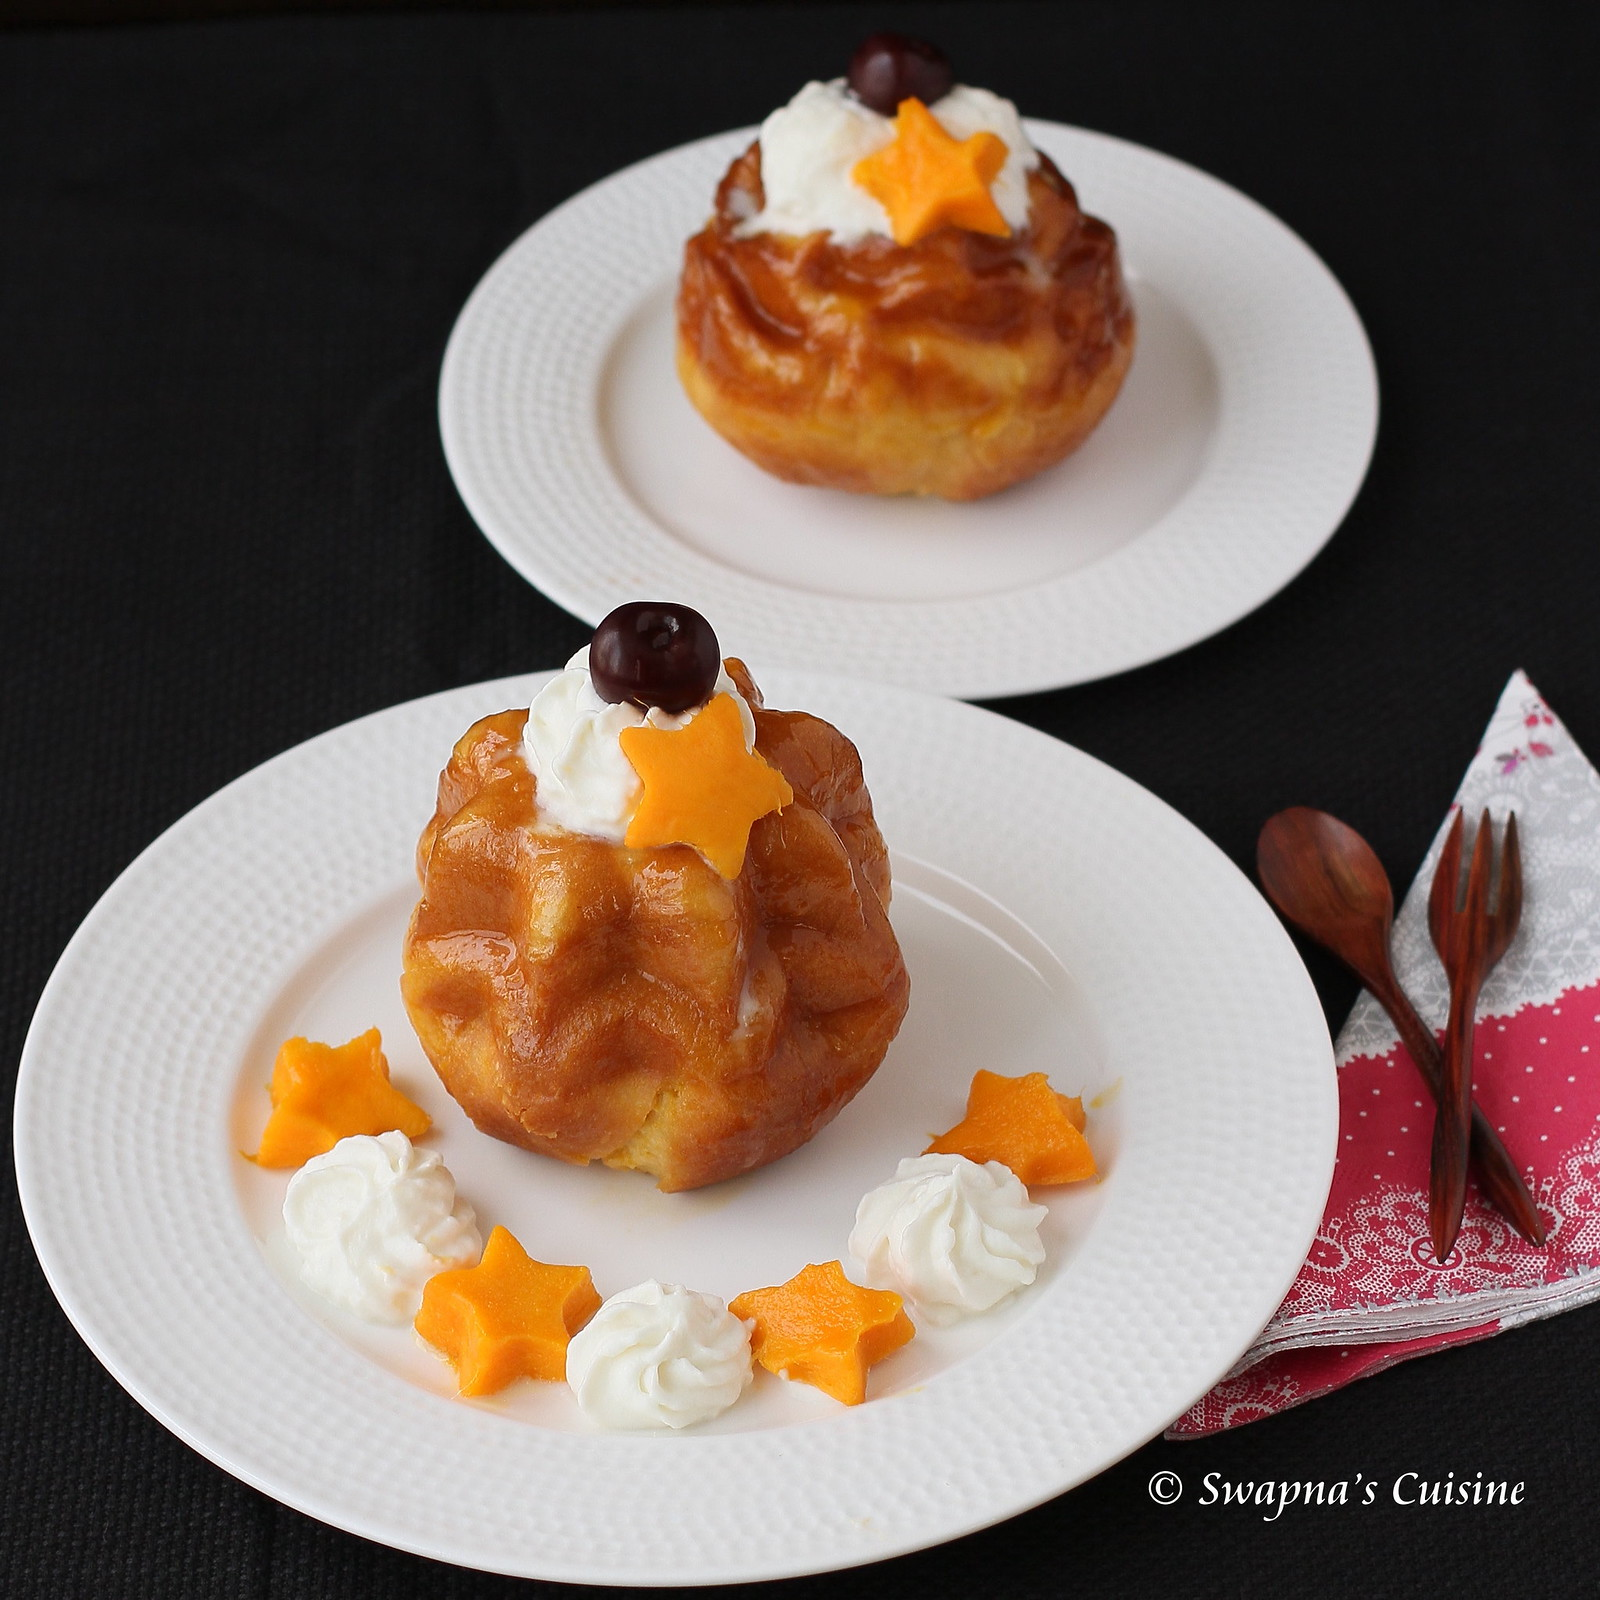 Passion Fruit Flavored Savarin